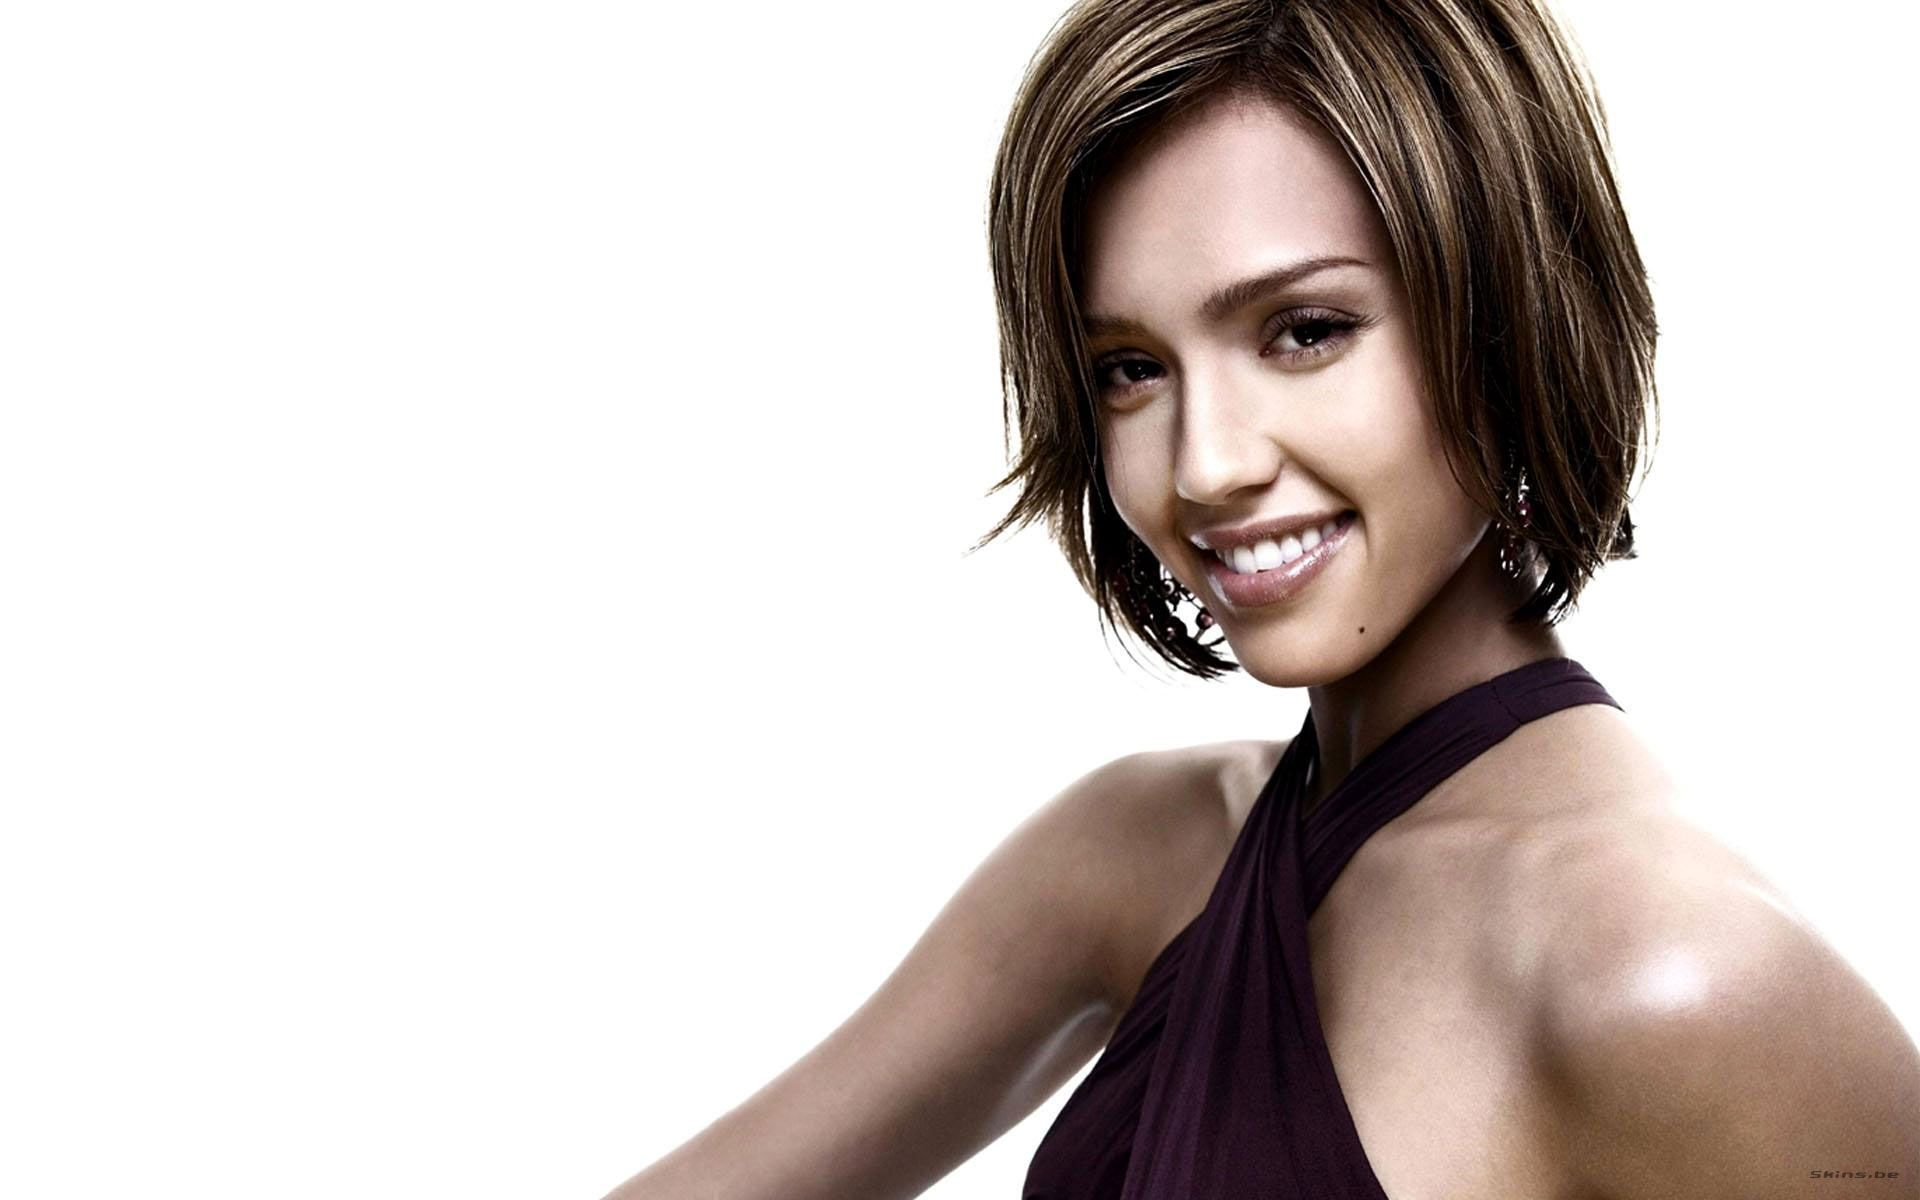 jessica alba wallpaper pc - photo #49